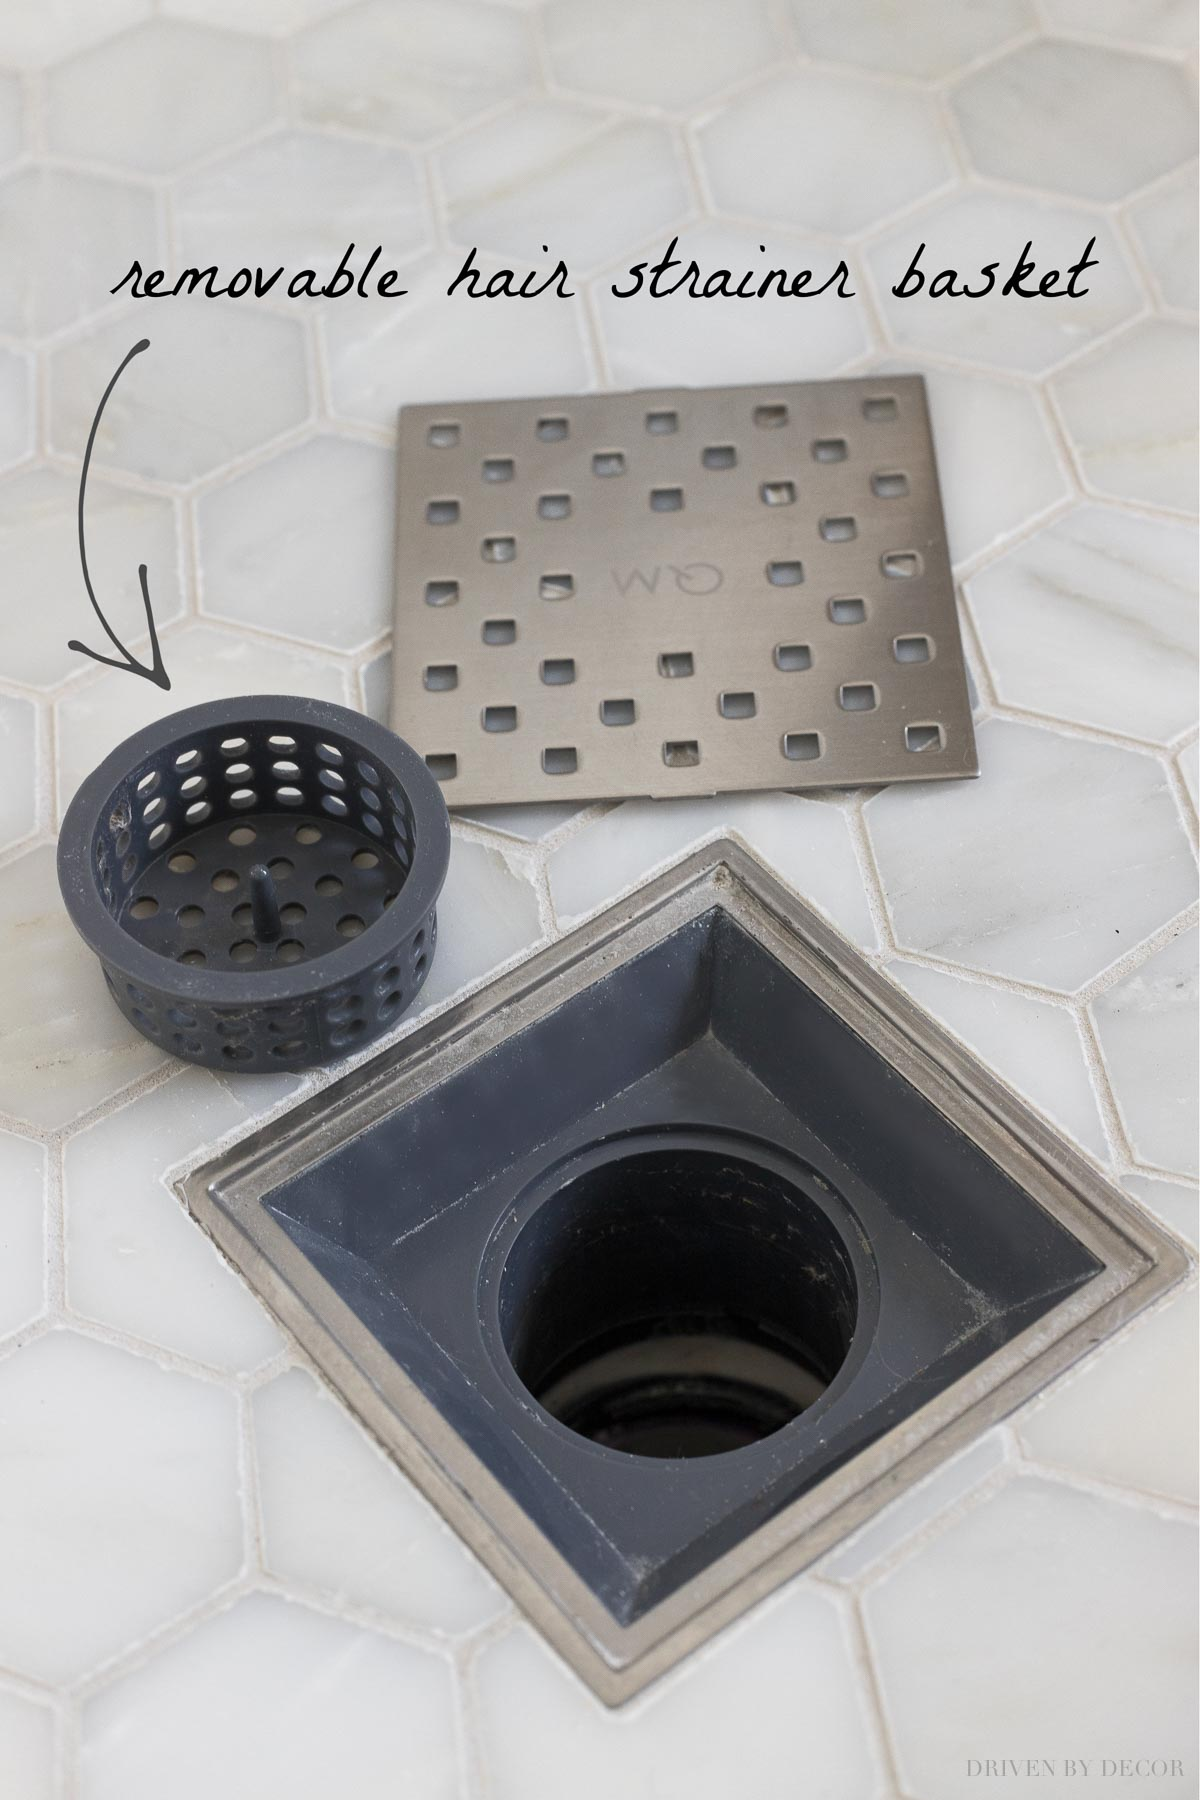 This shower drain has a removable hair strainer basket - such a smart master bathroom remodel idea!